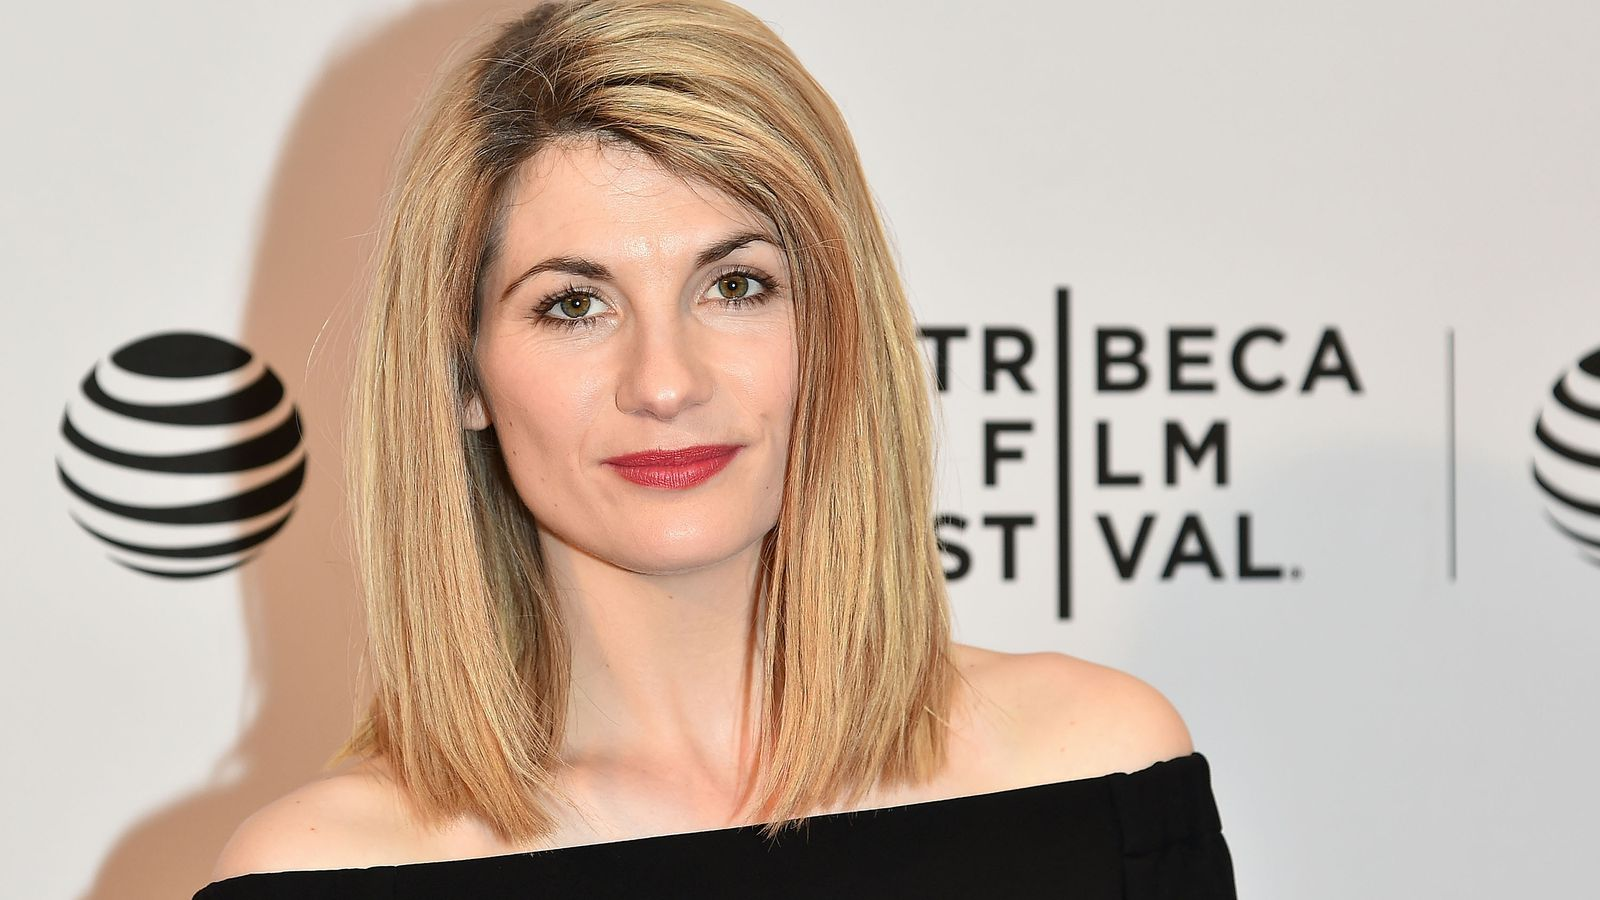 Doctor Who announces Broadchurch actress as first female Doctor